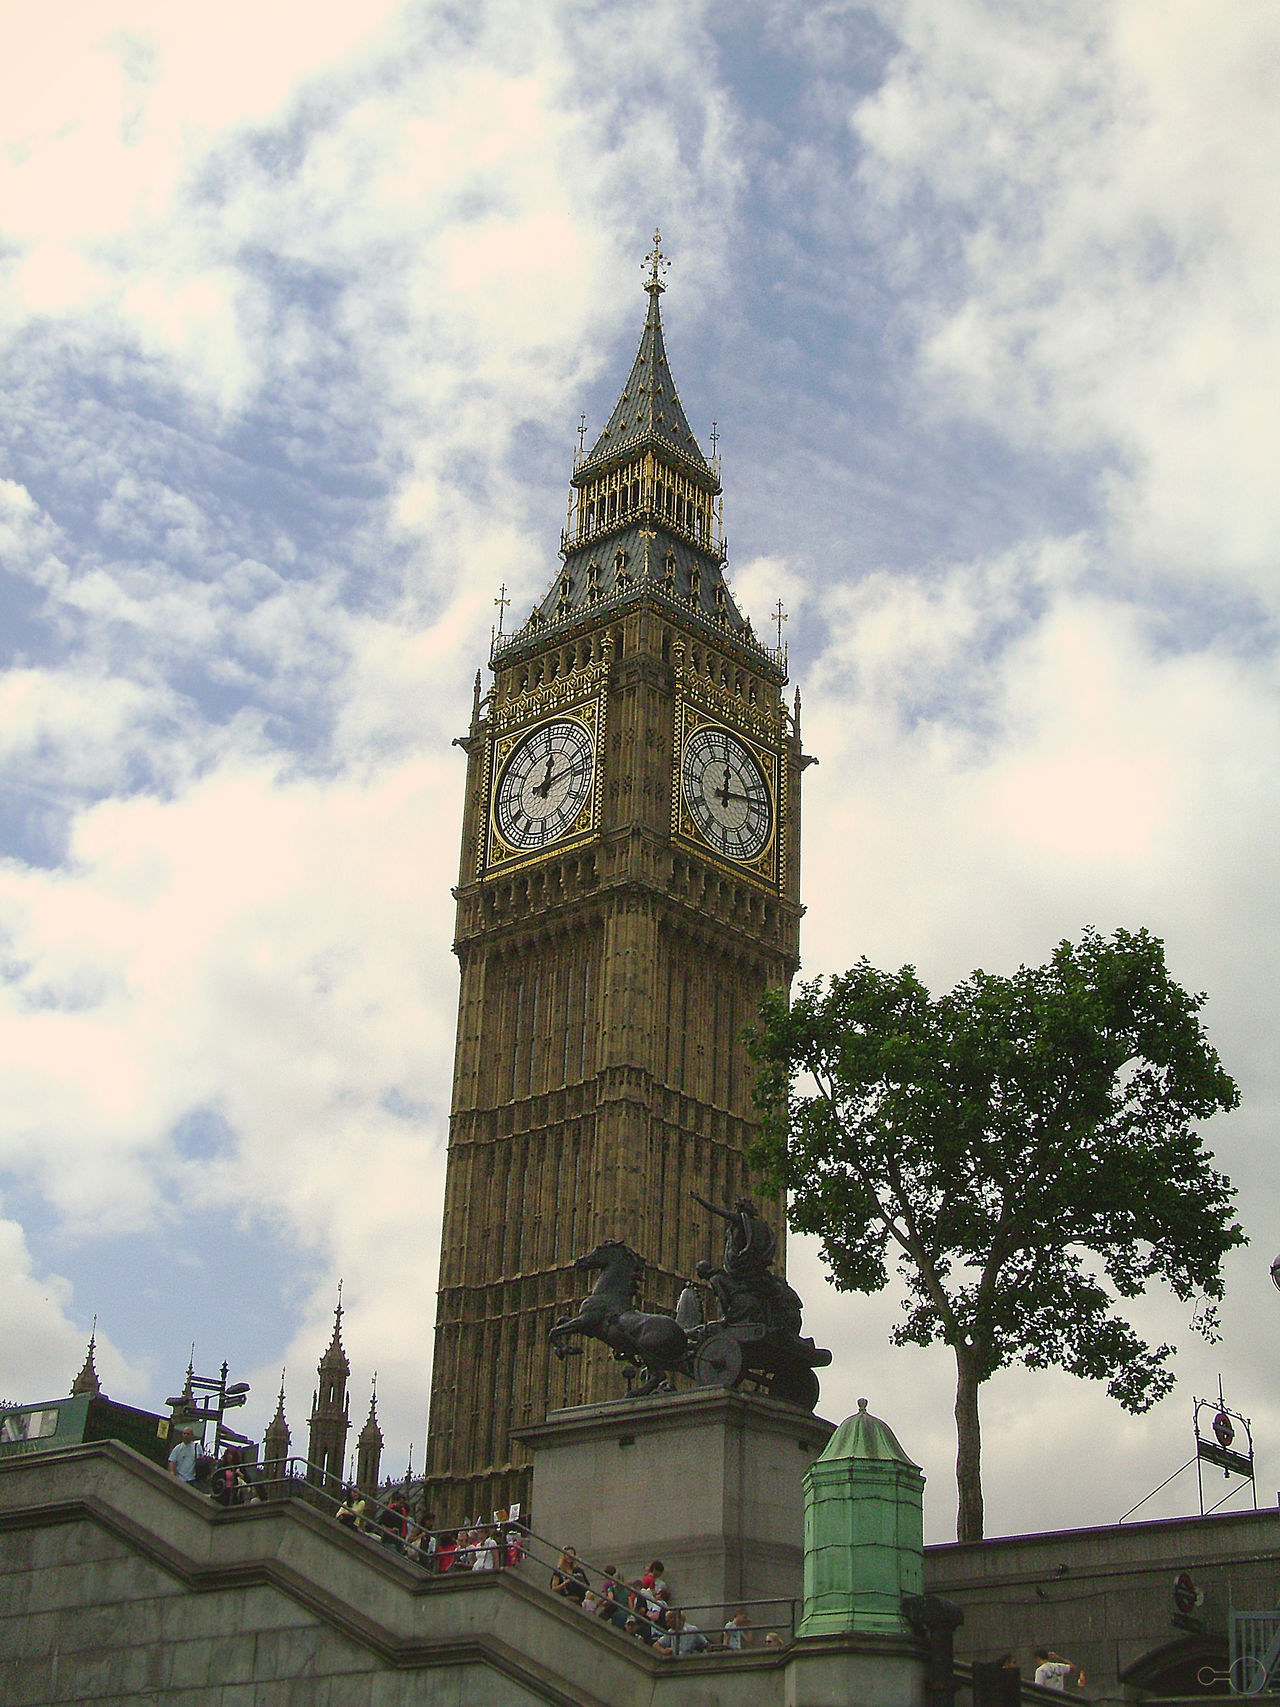 2008 Architecture Big Ben, London Building Exterior Built Structure City Clock Clock Tower Cultures Day Nice Outdoors Sky Time Tower Travel